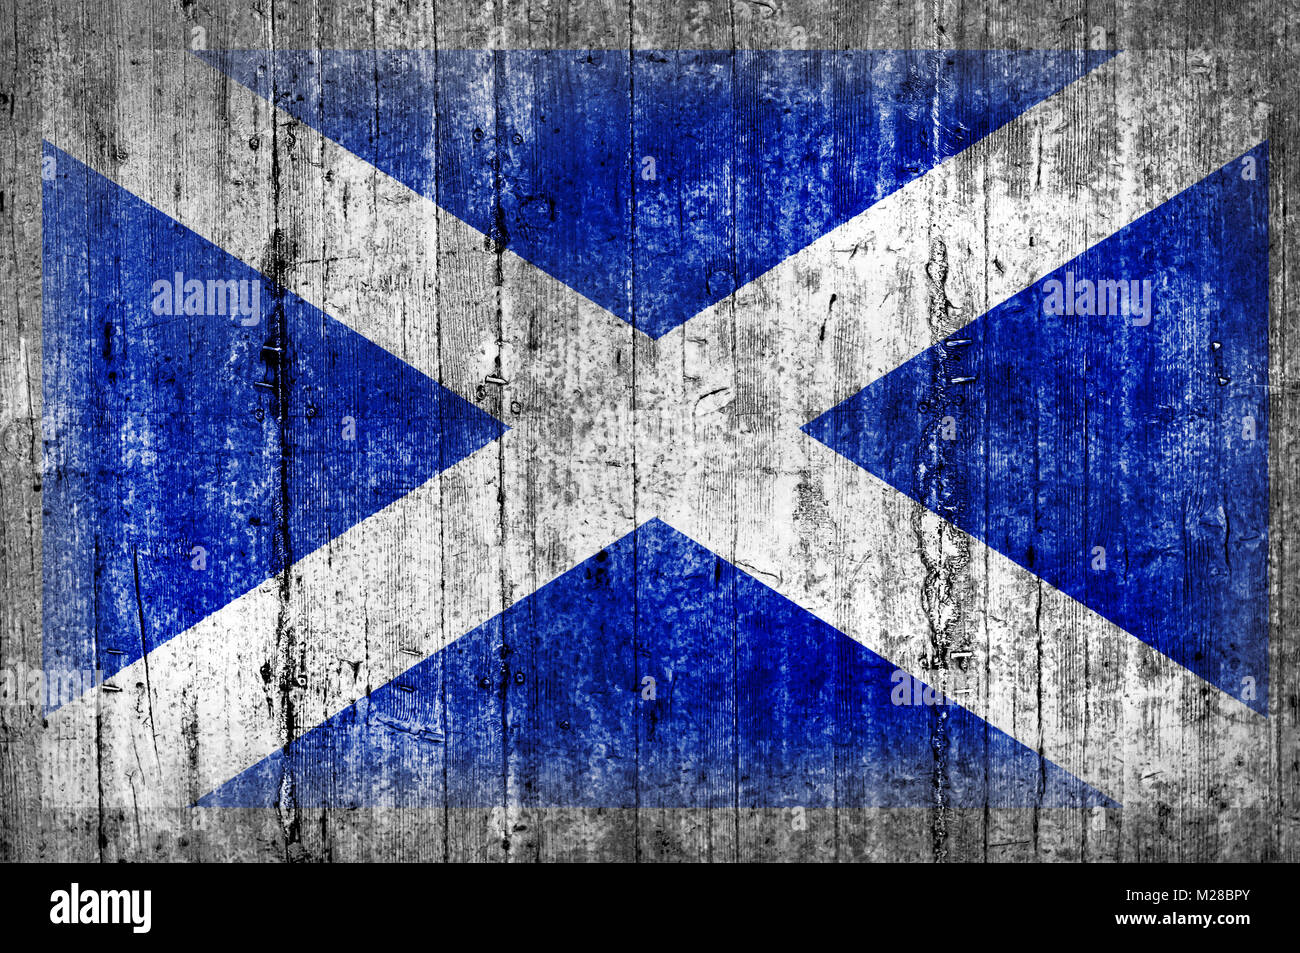 Scotland flag painted on background texture gray concrete - Stock Image